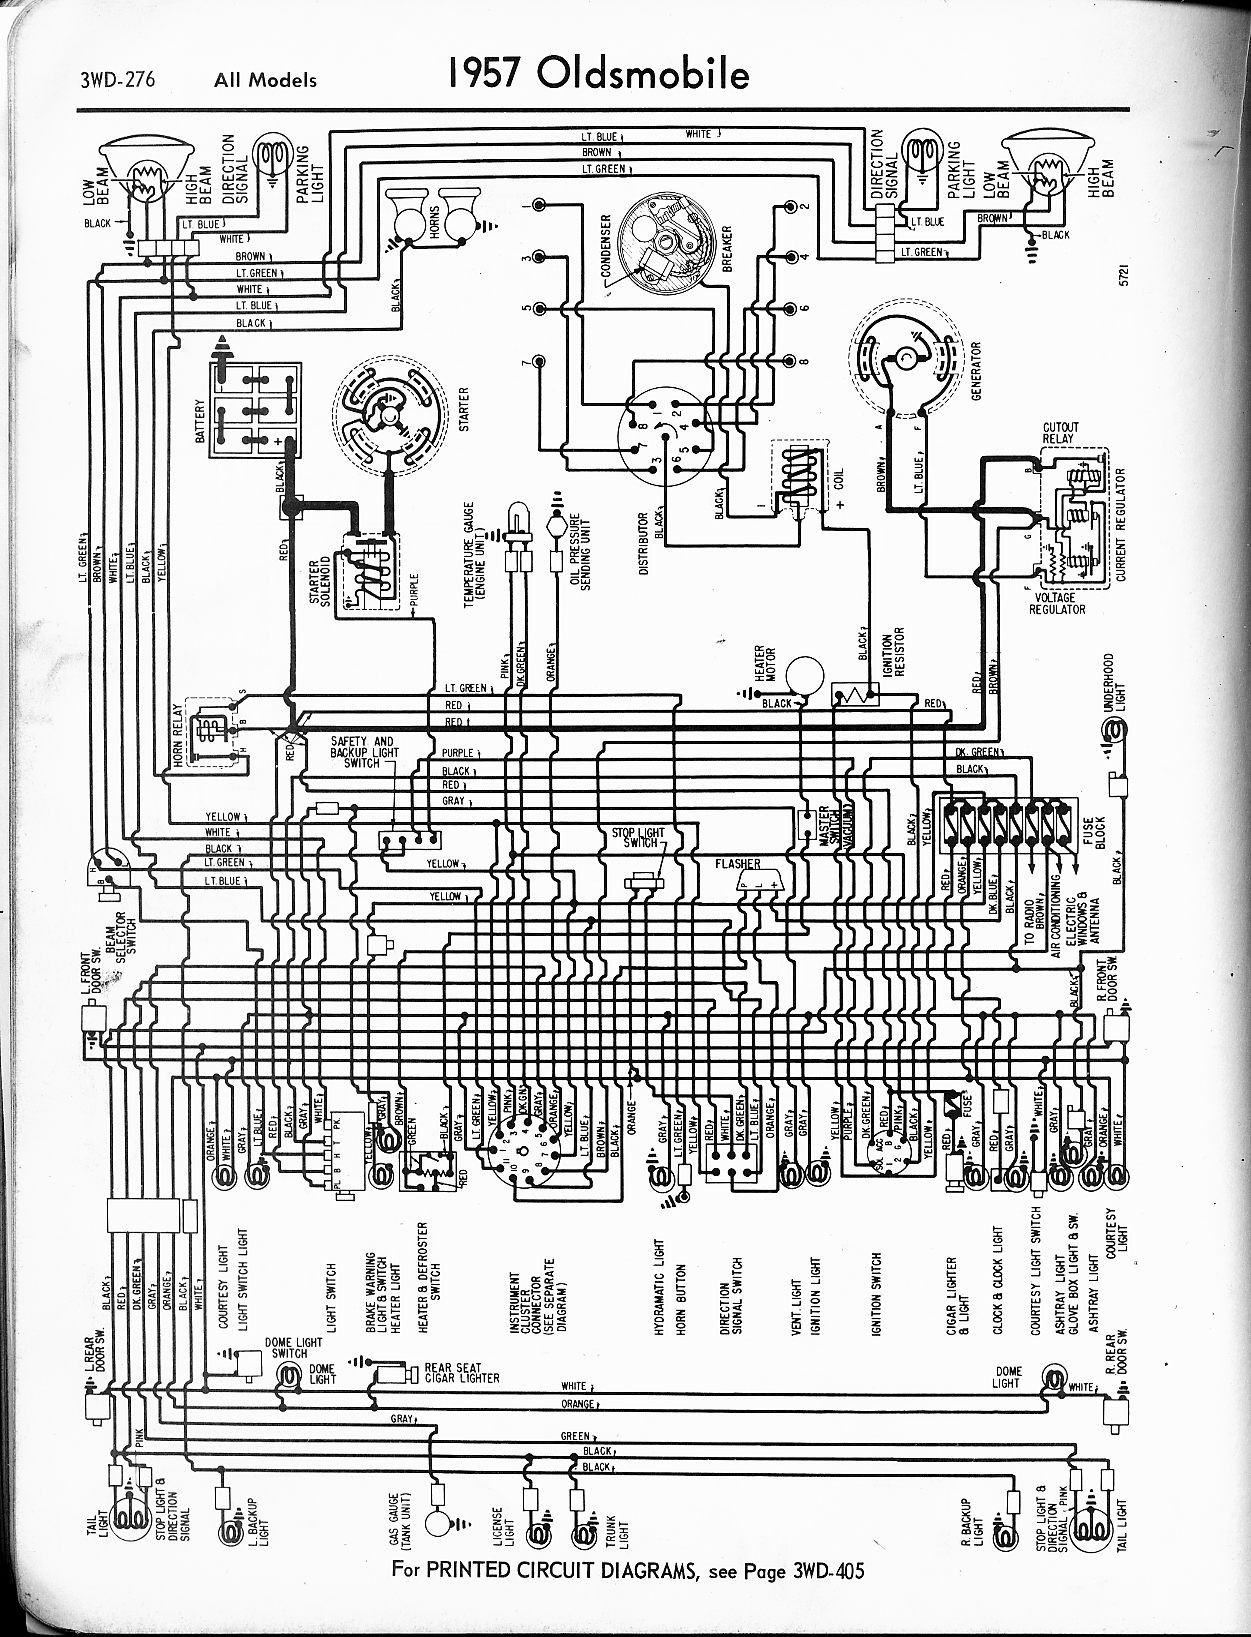 2004 Kia Amanti Engine Diagram Wiring Diagram Besides 1996 Oldsmobile  Cutlass Engine Wiring Diagram Of 2004